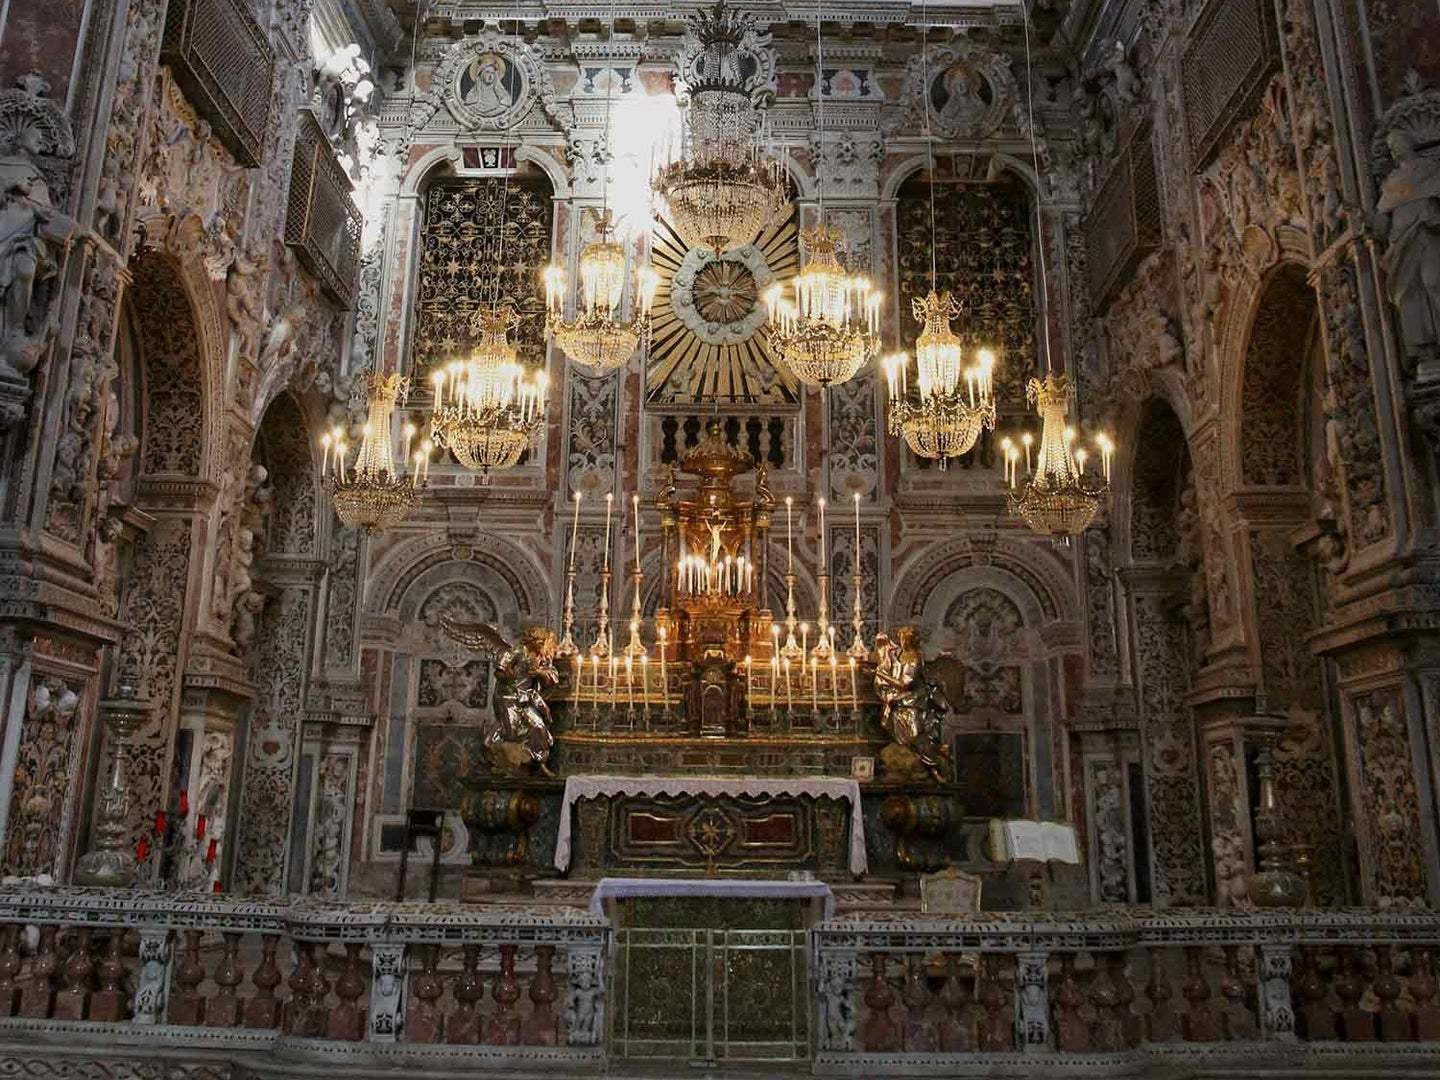 A view of the ornate church at the Santa Caterina monastery in Palermo.